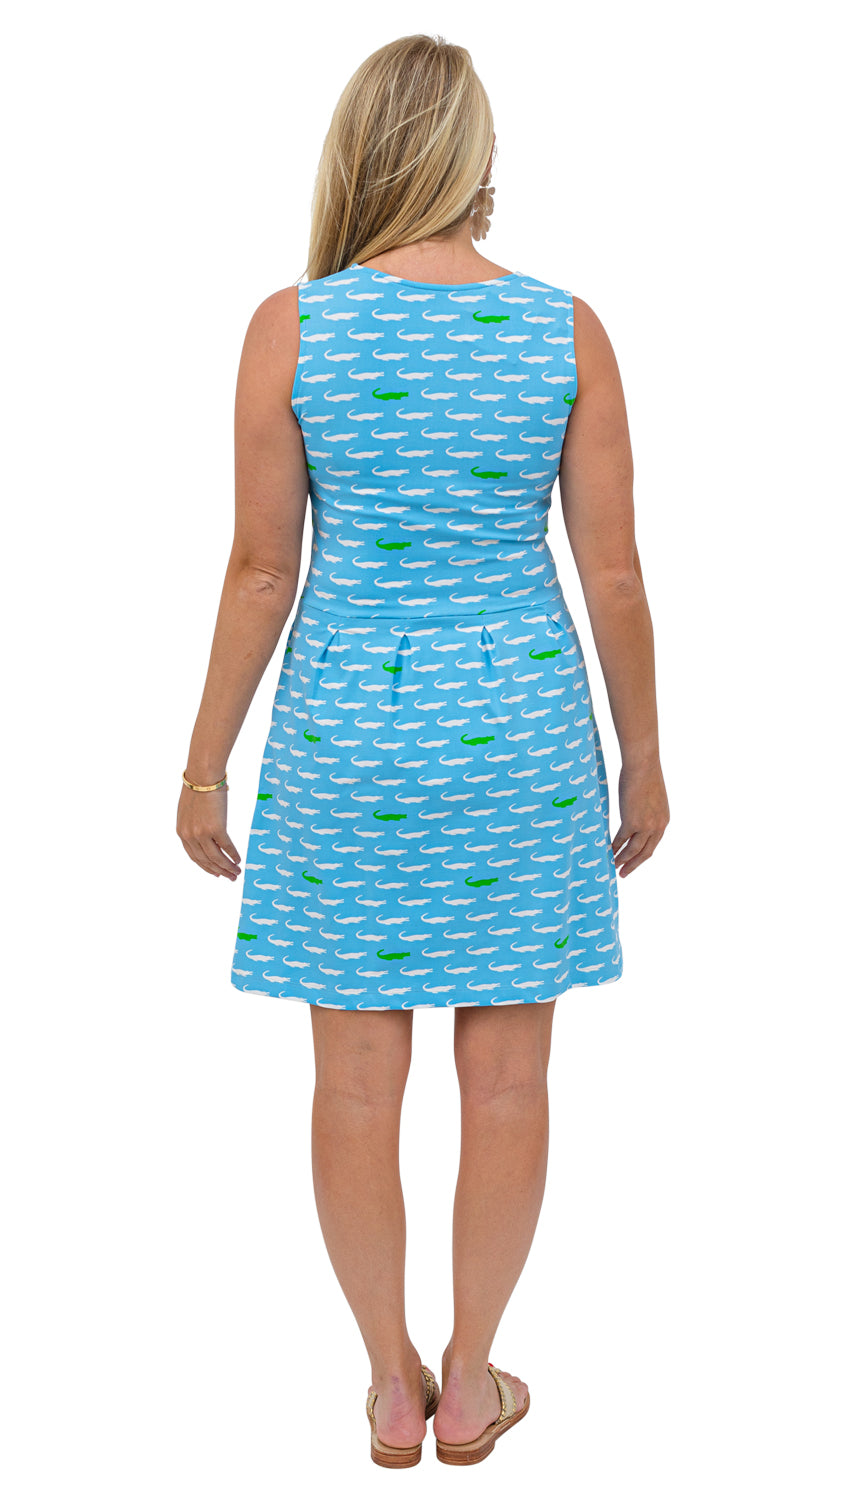 Boardwalk Dress - Alligators